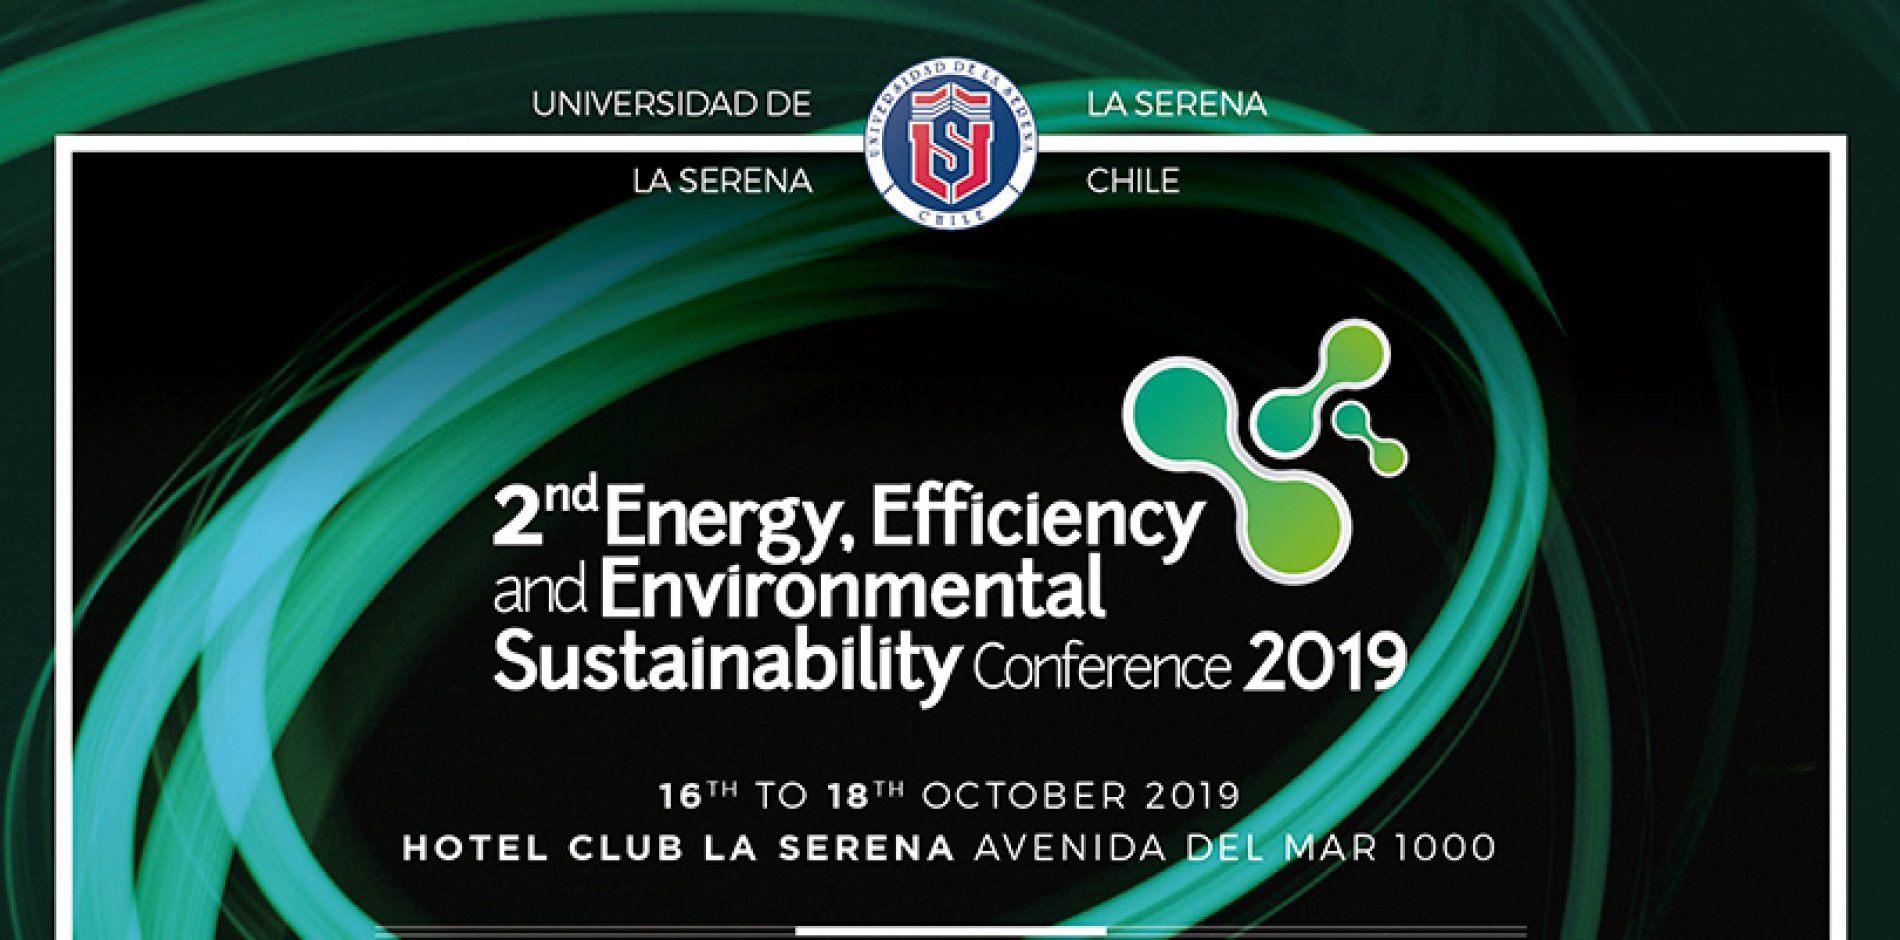 2nd Energy, Efficiency and Environmental Sustainability Conference 2019